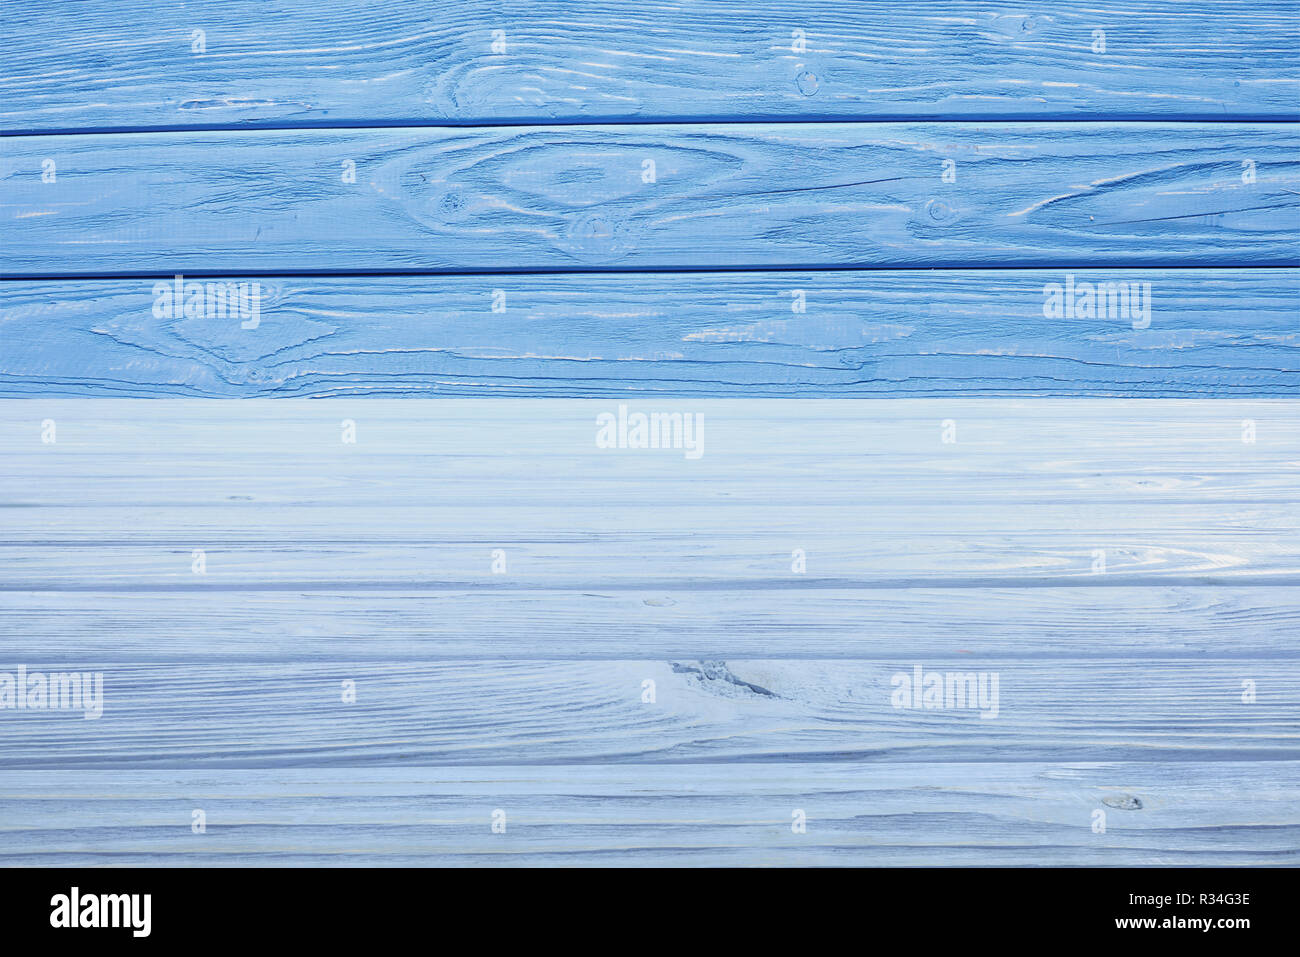 template of light blue wooden floor with blue planks on background - Stock Image